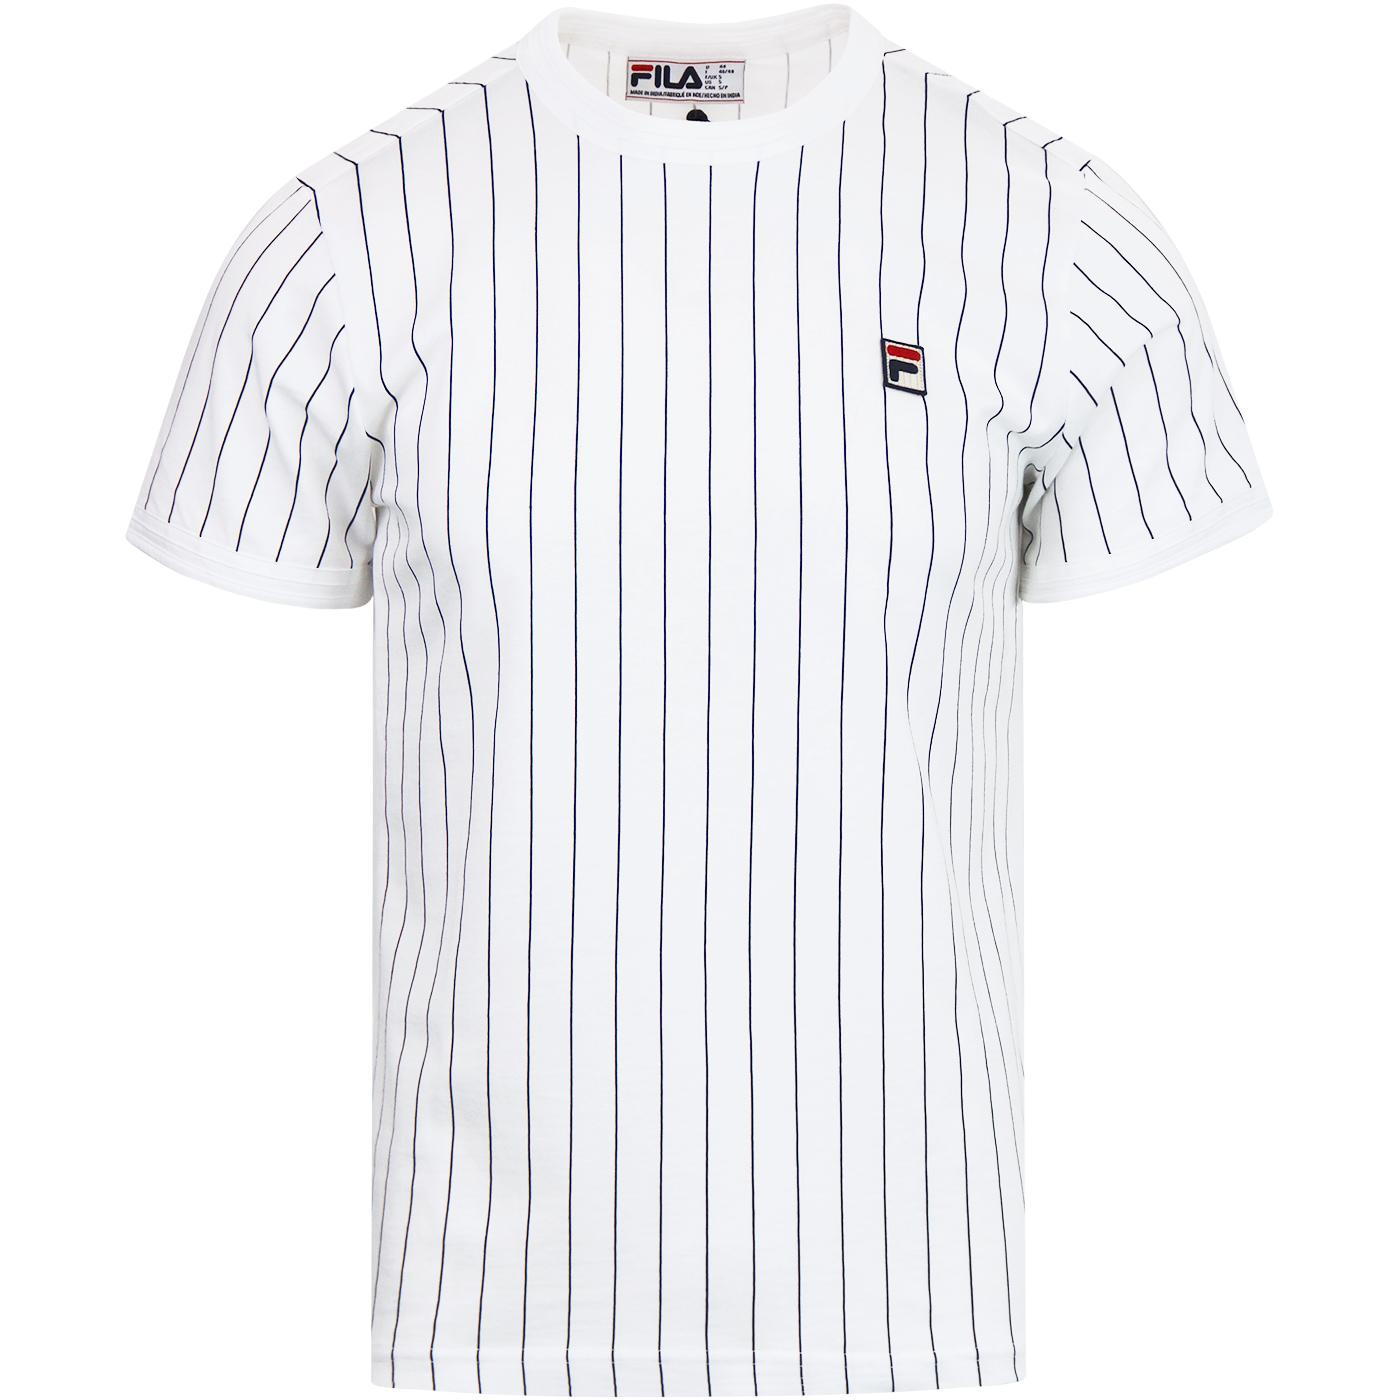 Guilo FILA VINTAGE Men's Retro Pinstripe Tee WHITE